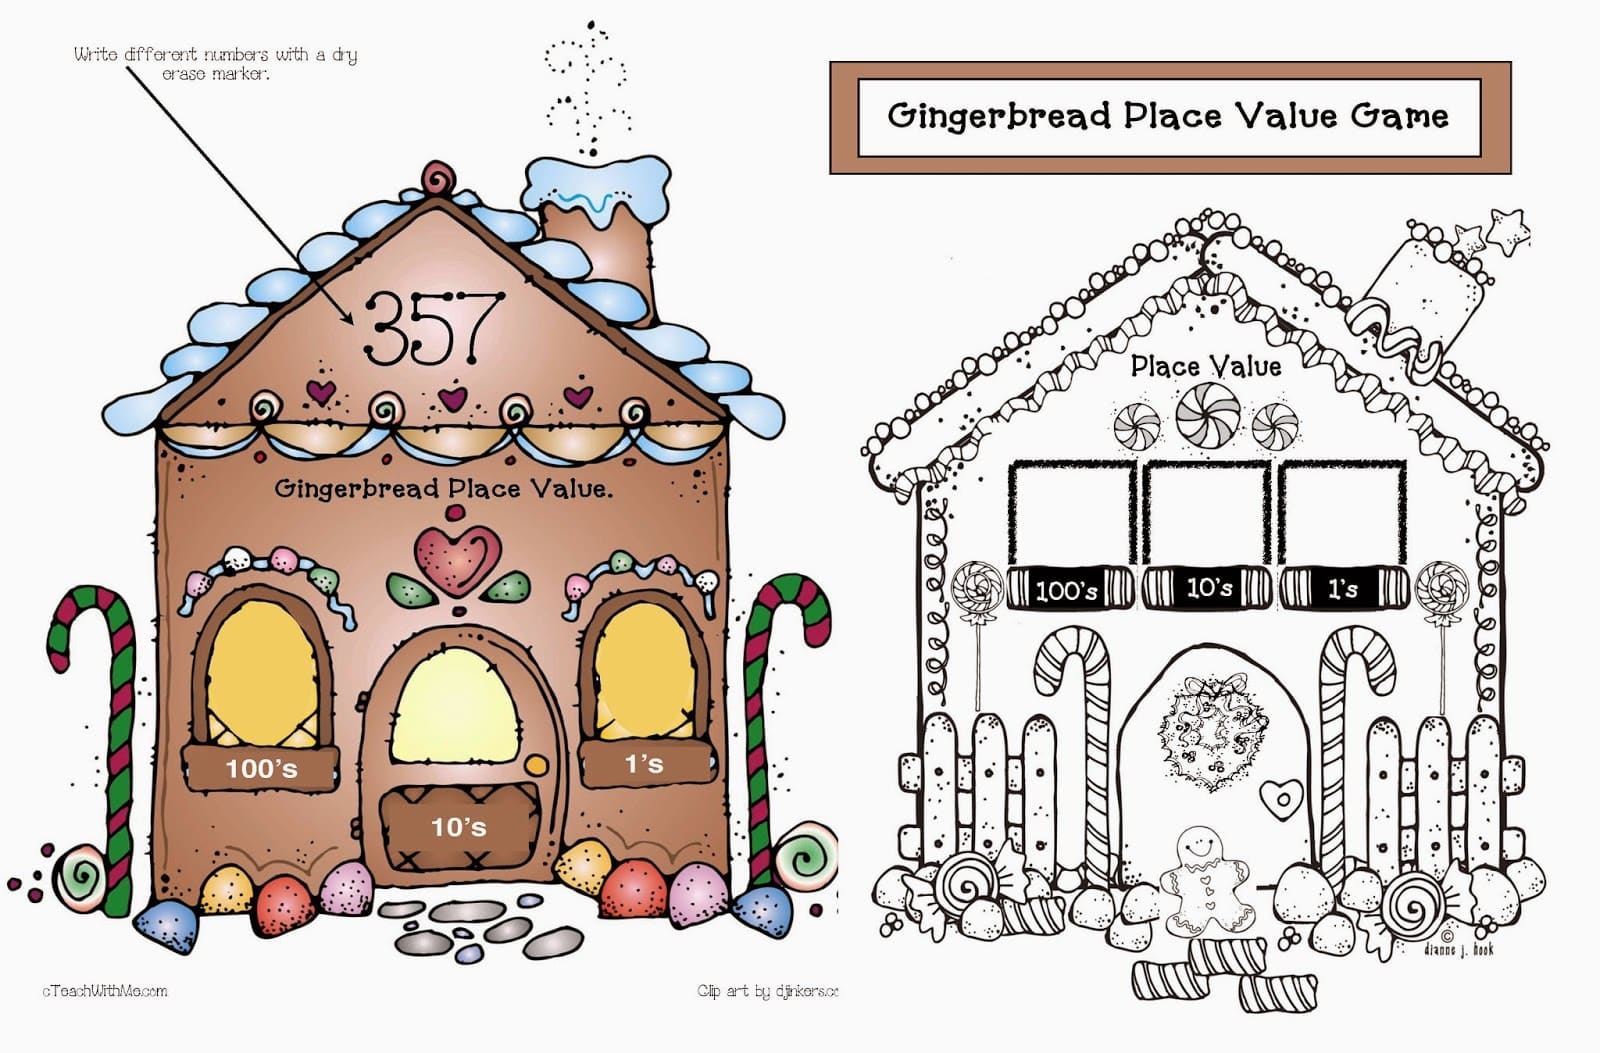 Place Value Gingerbread House Game